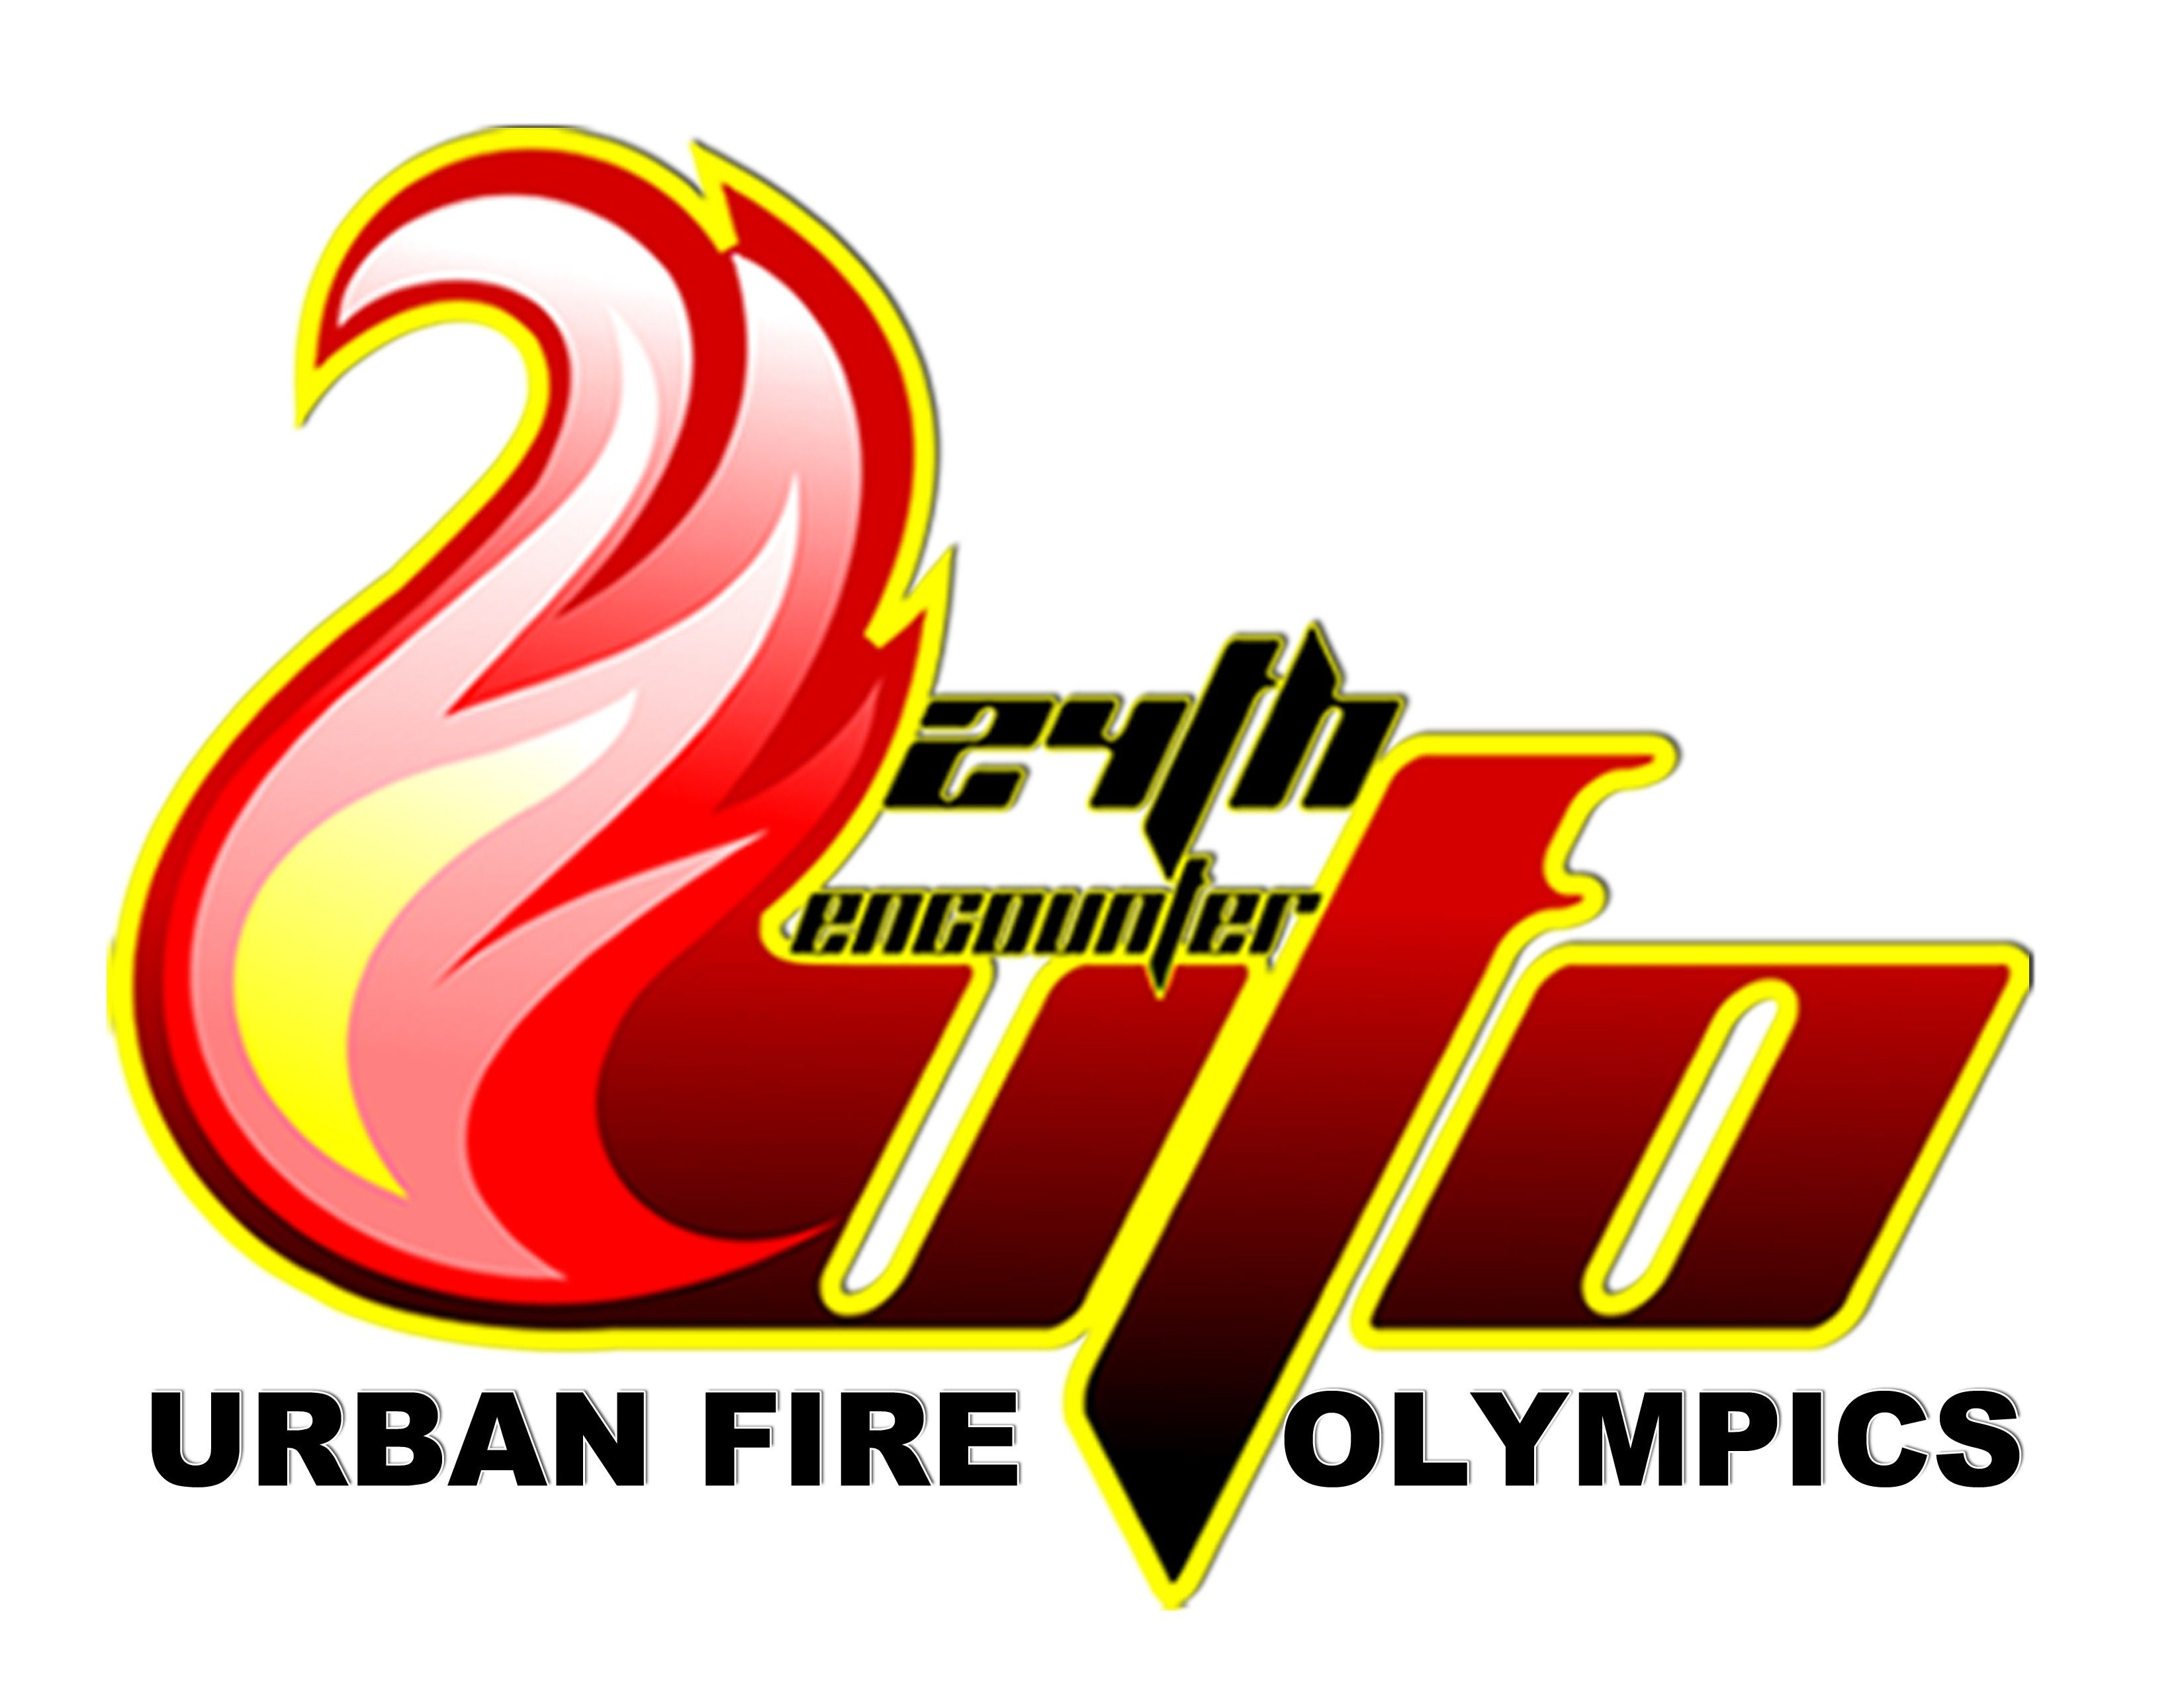 Sportsfest Logo Design Picture Gallery Fire athletic